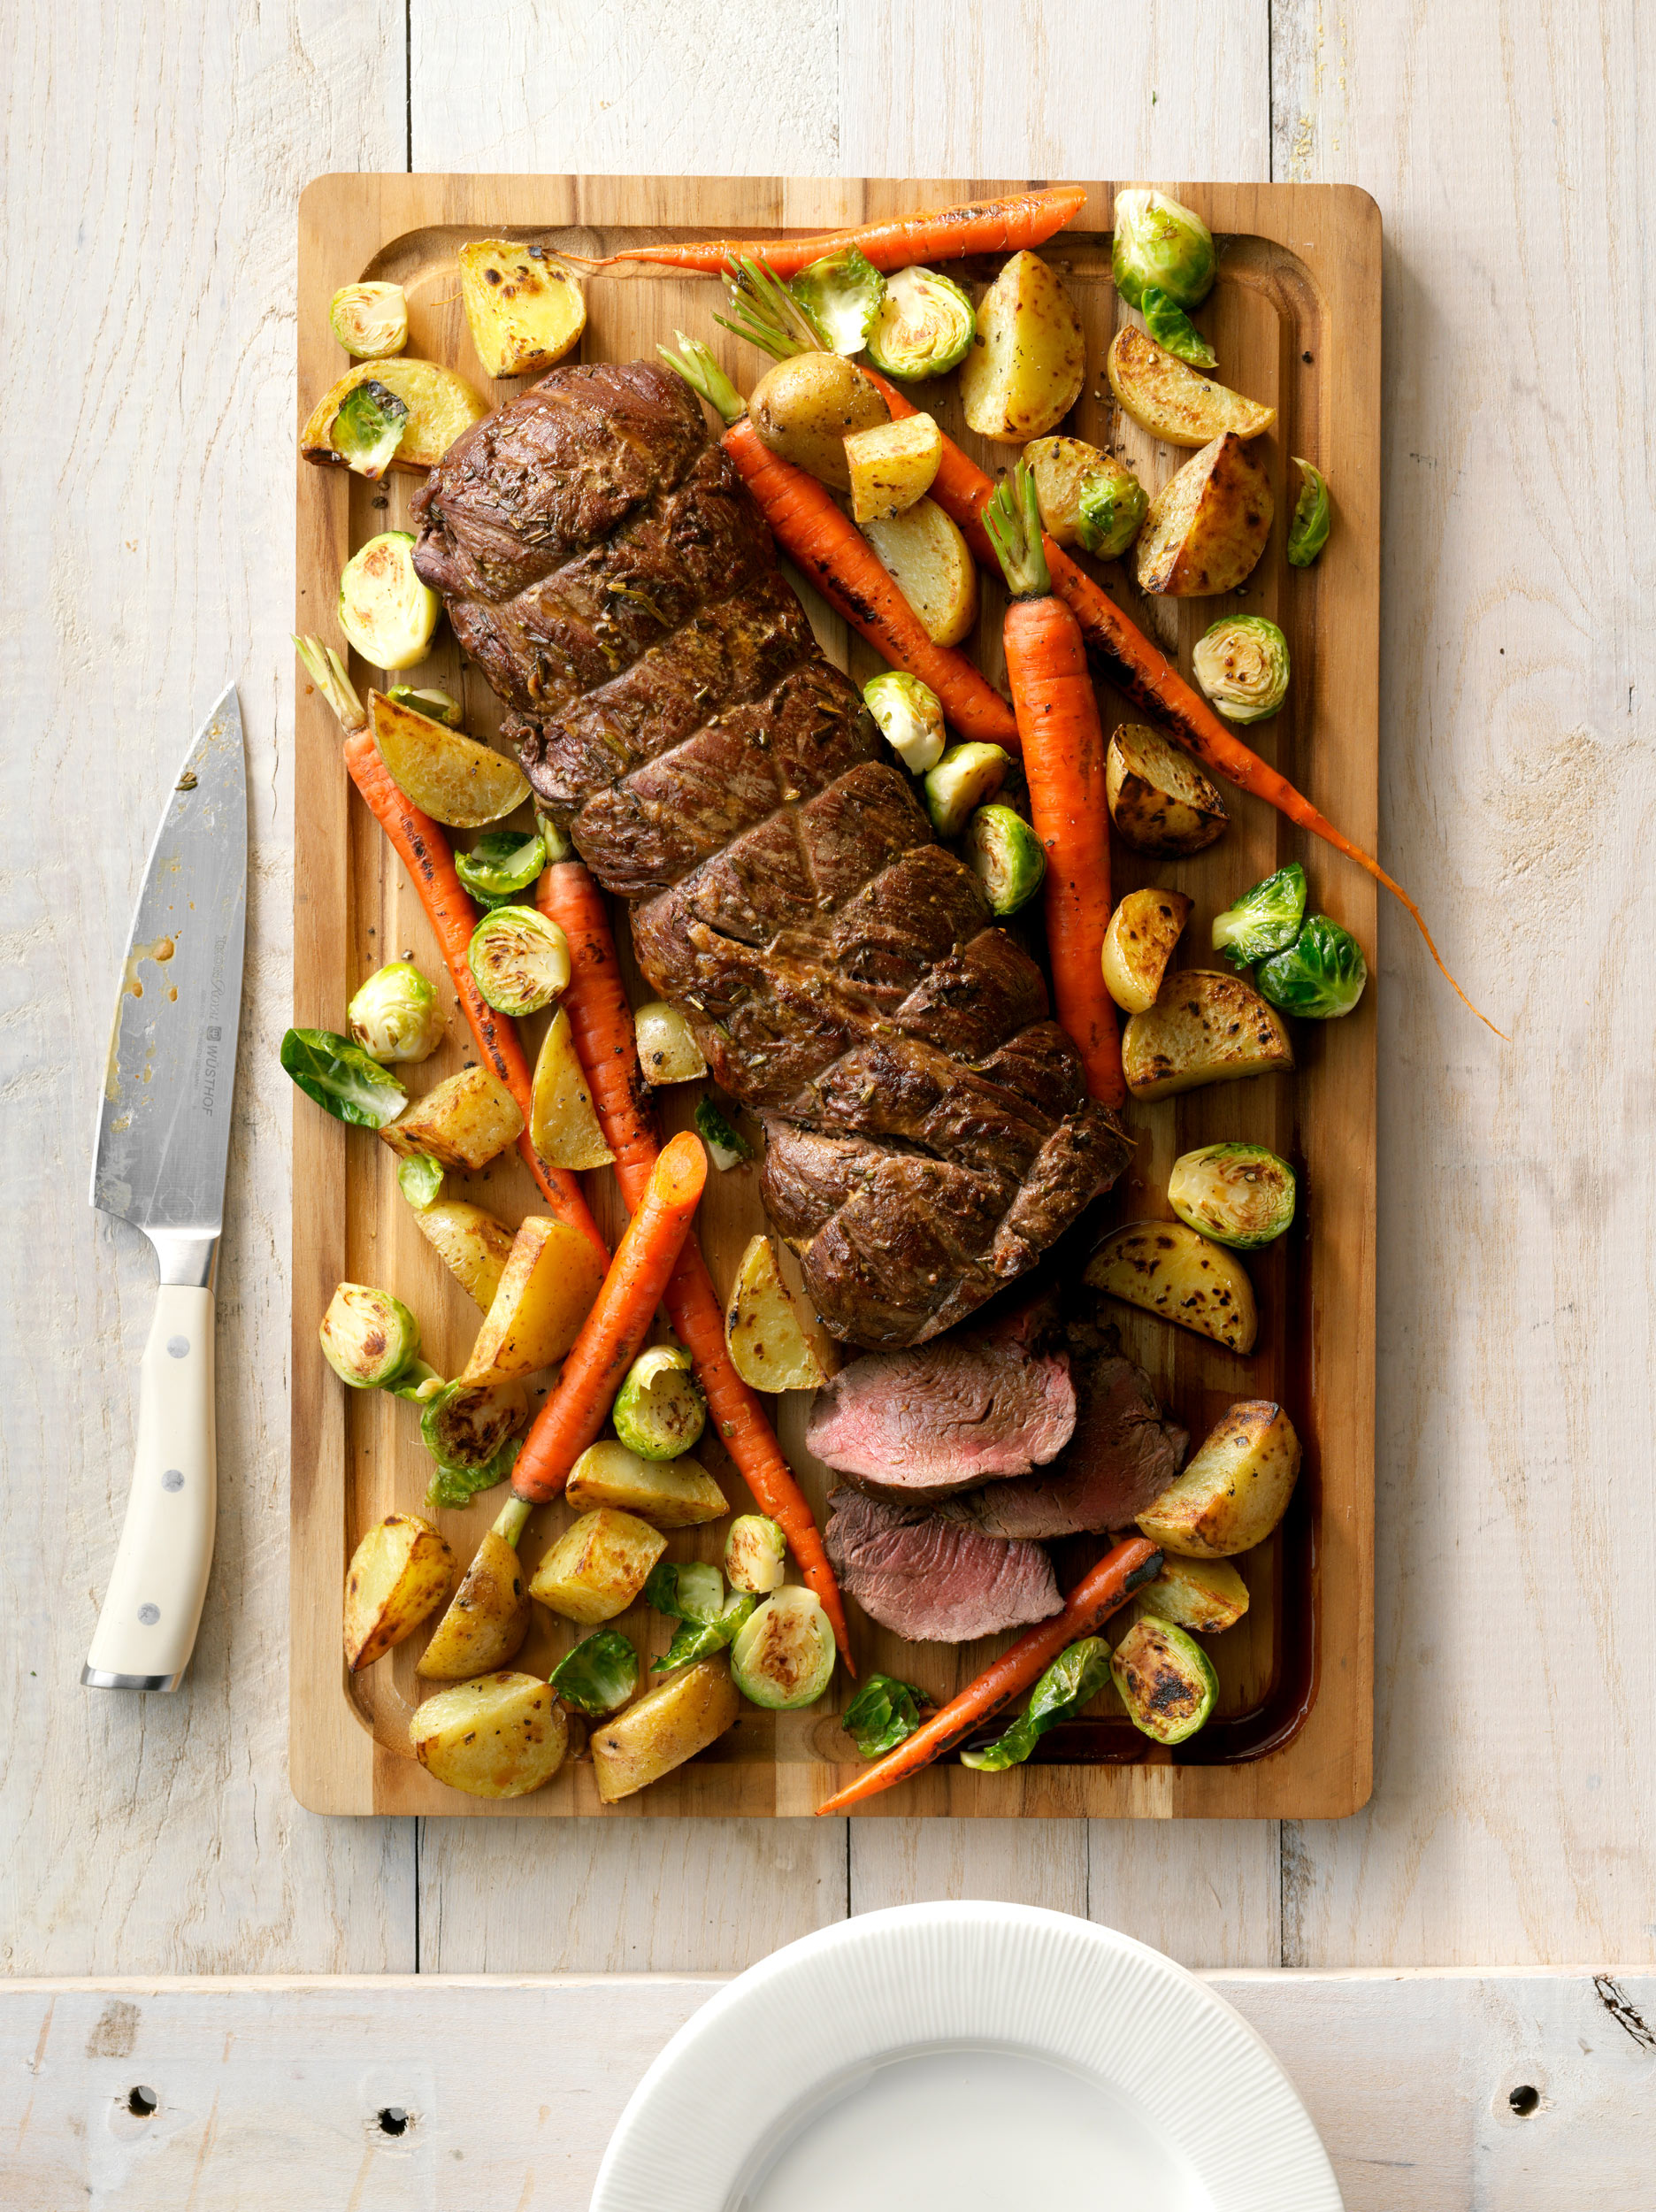 Beef Tenderloin with Roasted Vegetables photo by Chris Kessler Photography.  Chris Kessler is a freelance Photographer based in Milwaukee Wisconsin. Specializing in Food photography and portraiture.